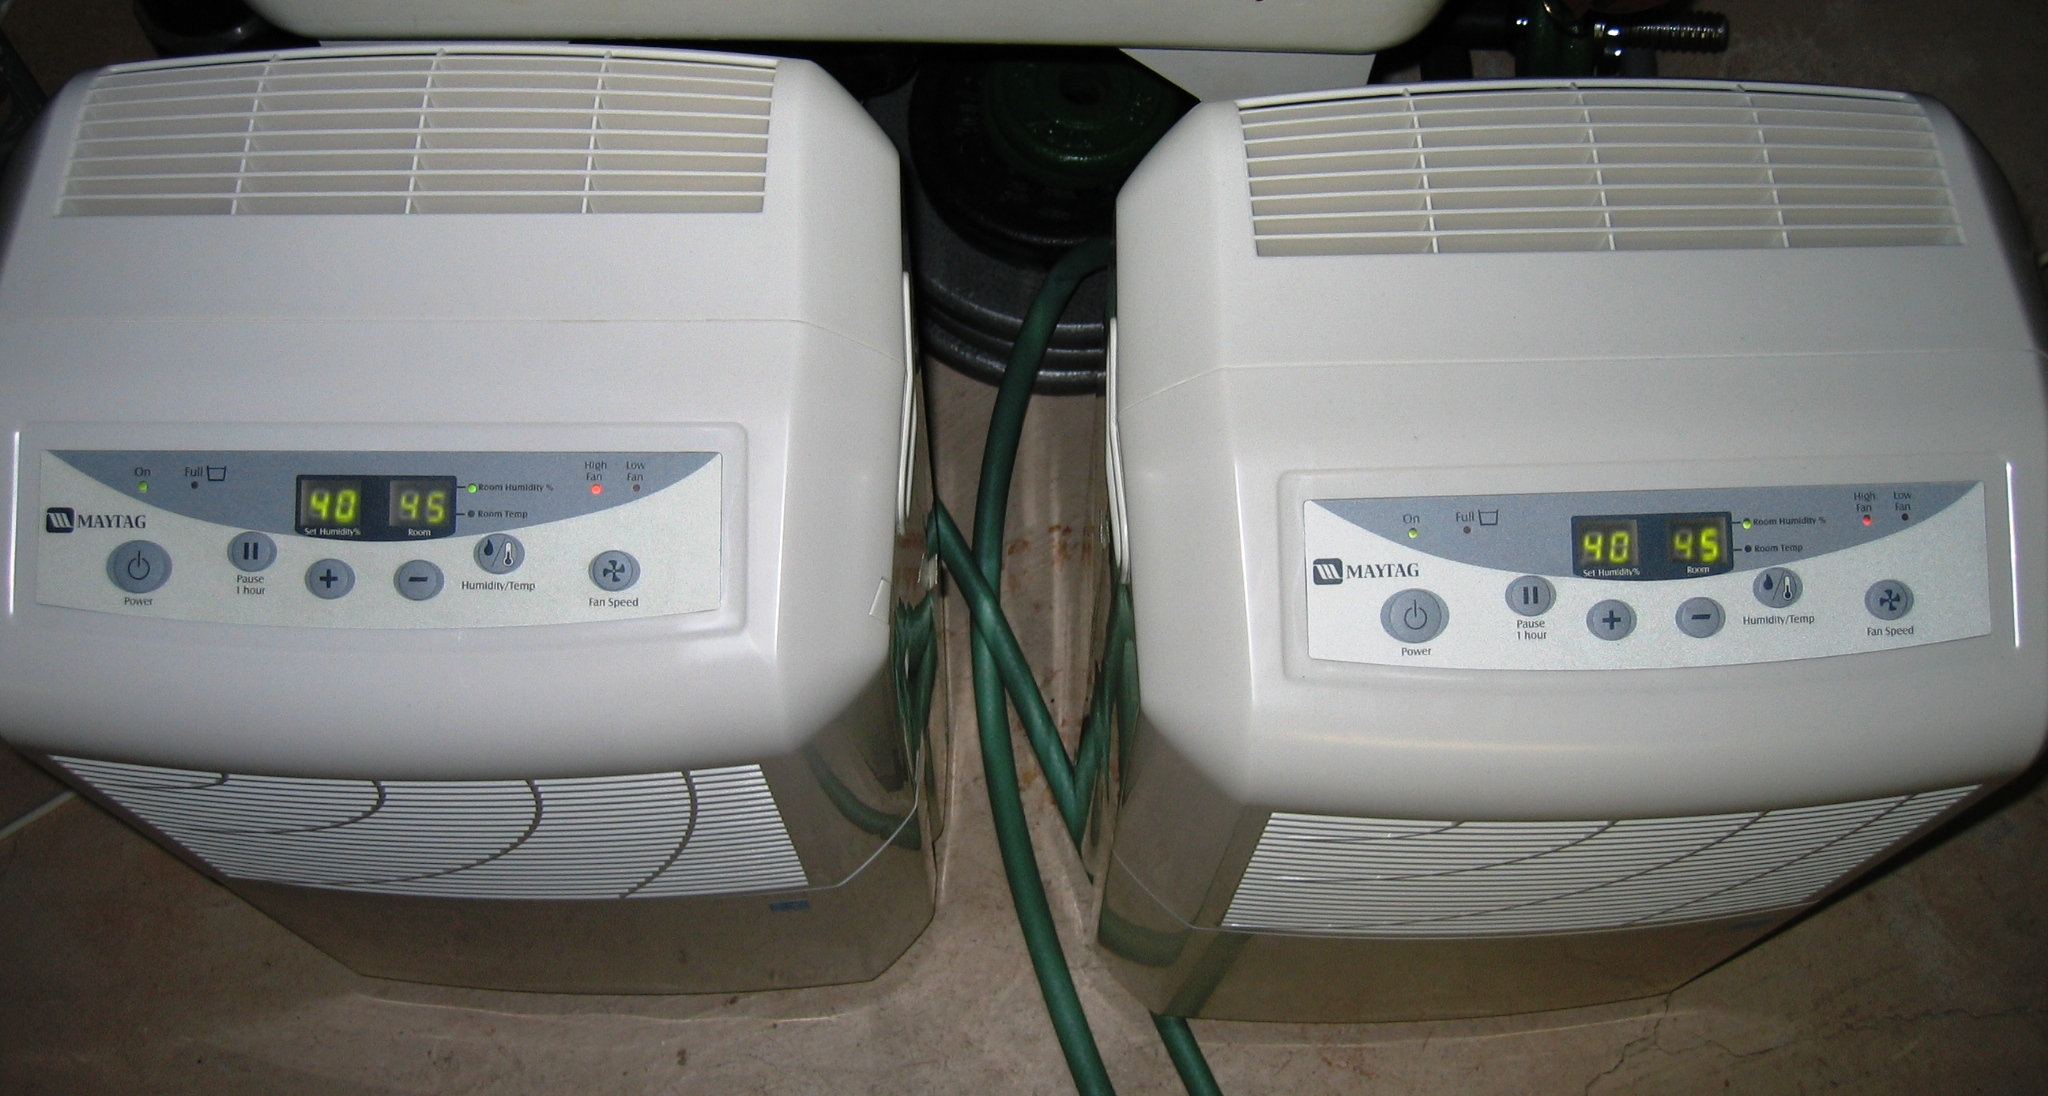 Dehumidifier Air Conditioner Air To Air Exchanger #5B5044